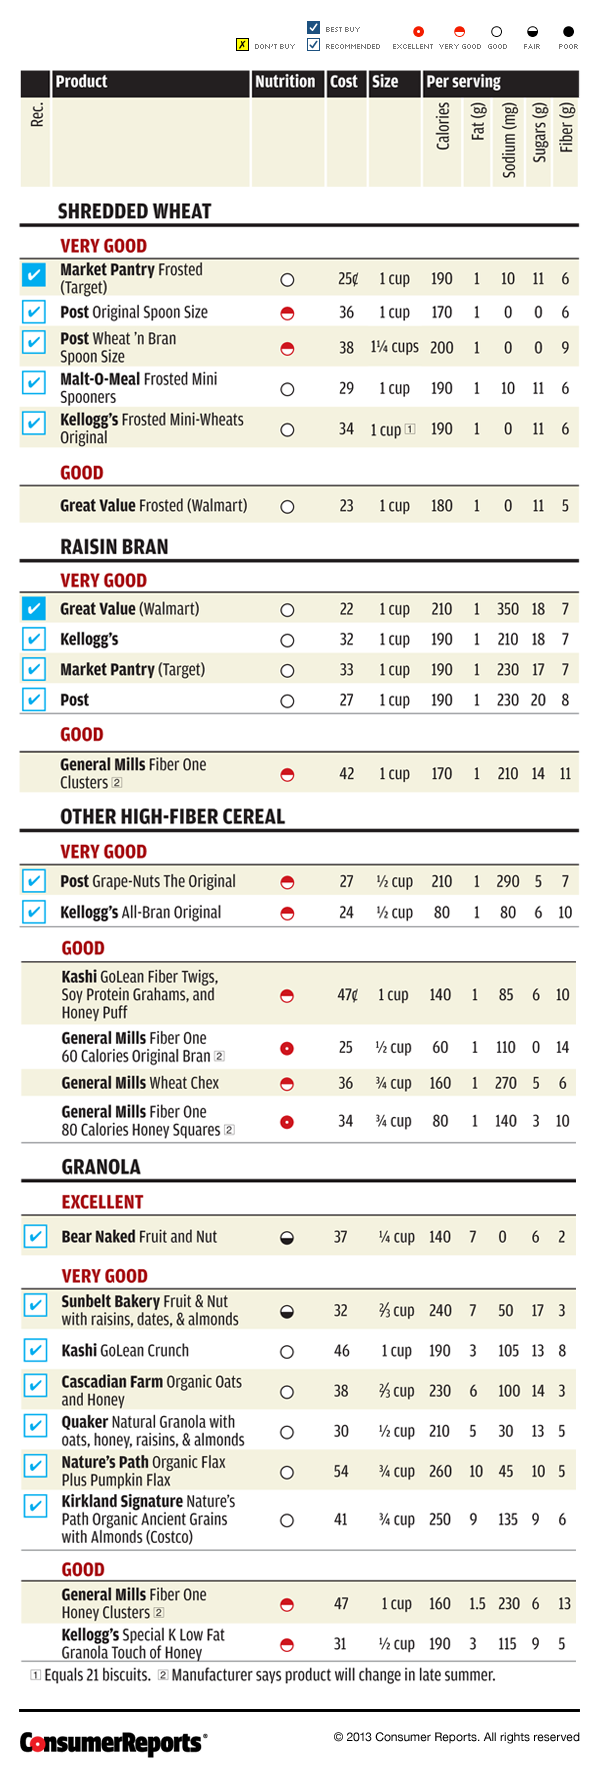 Consumer Reports_9-13_cereal_ratings_chart.png